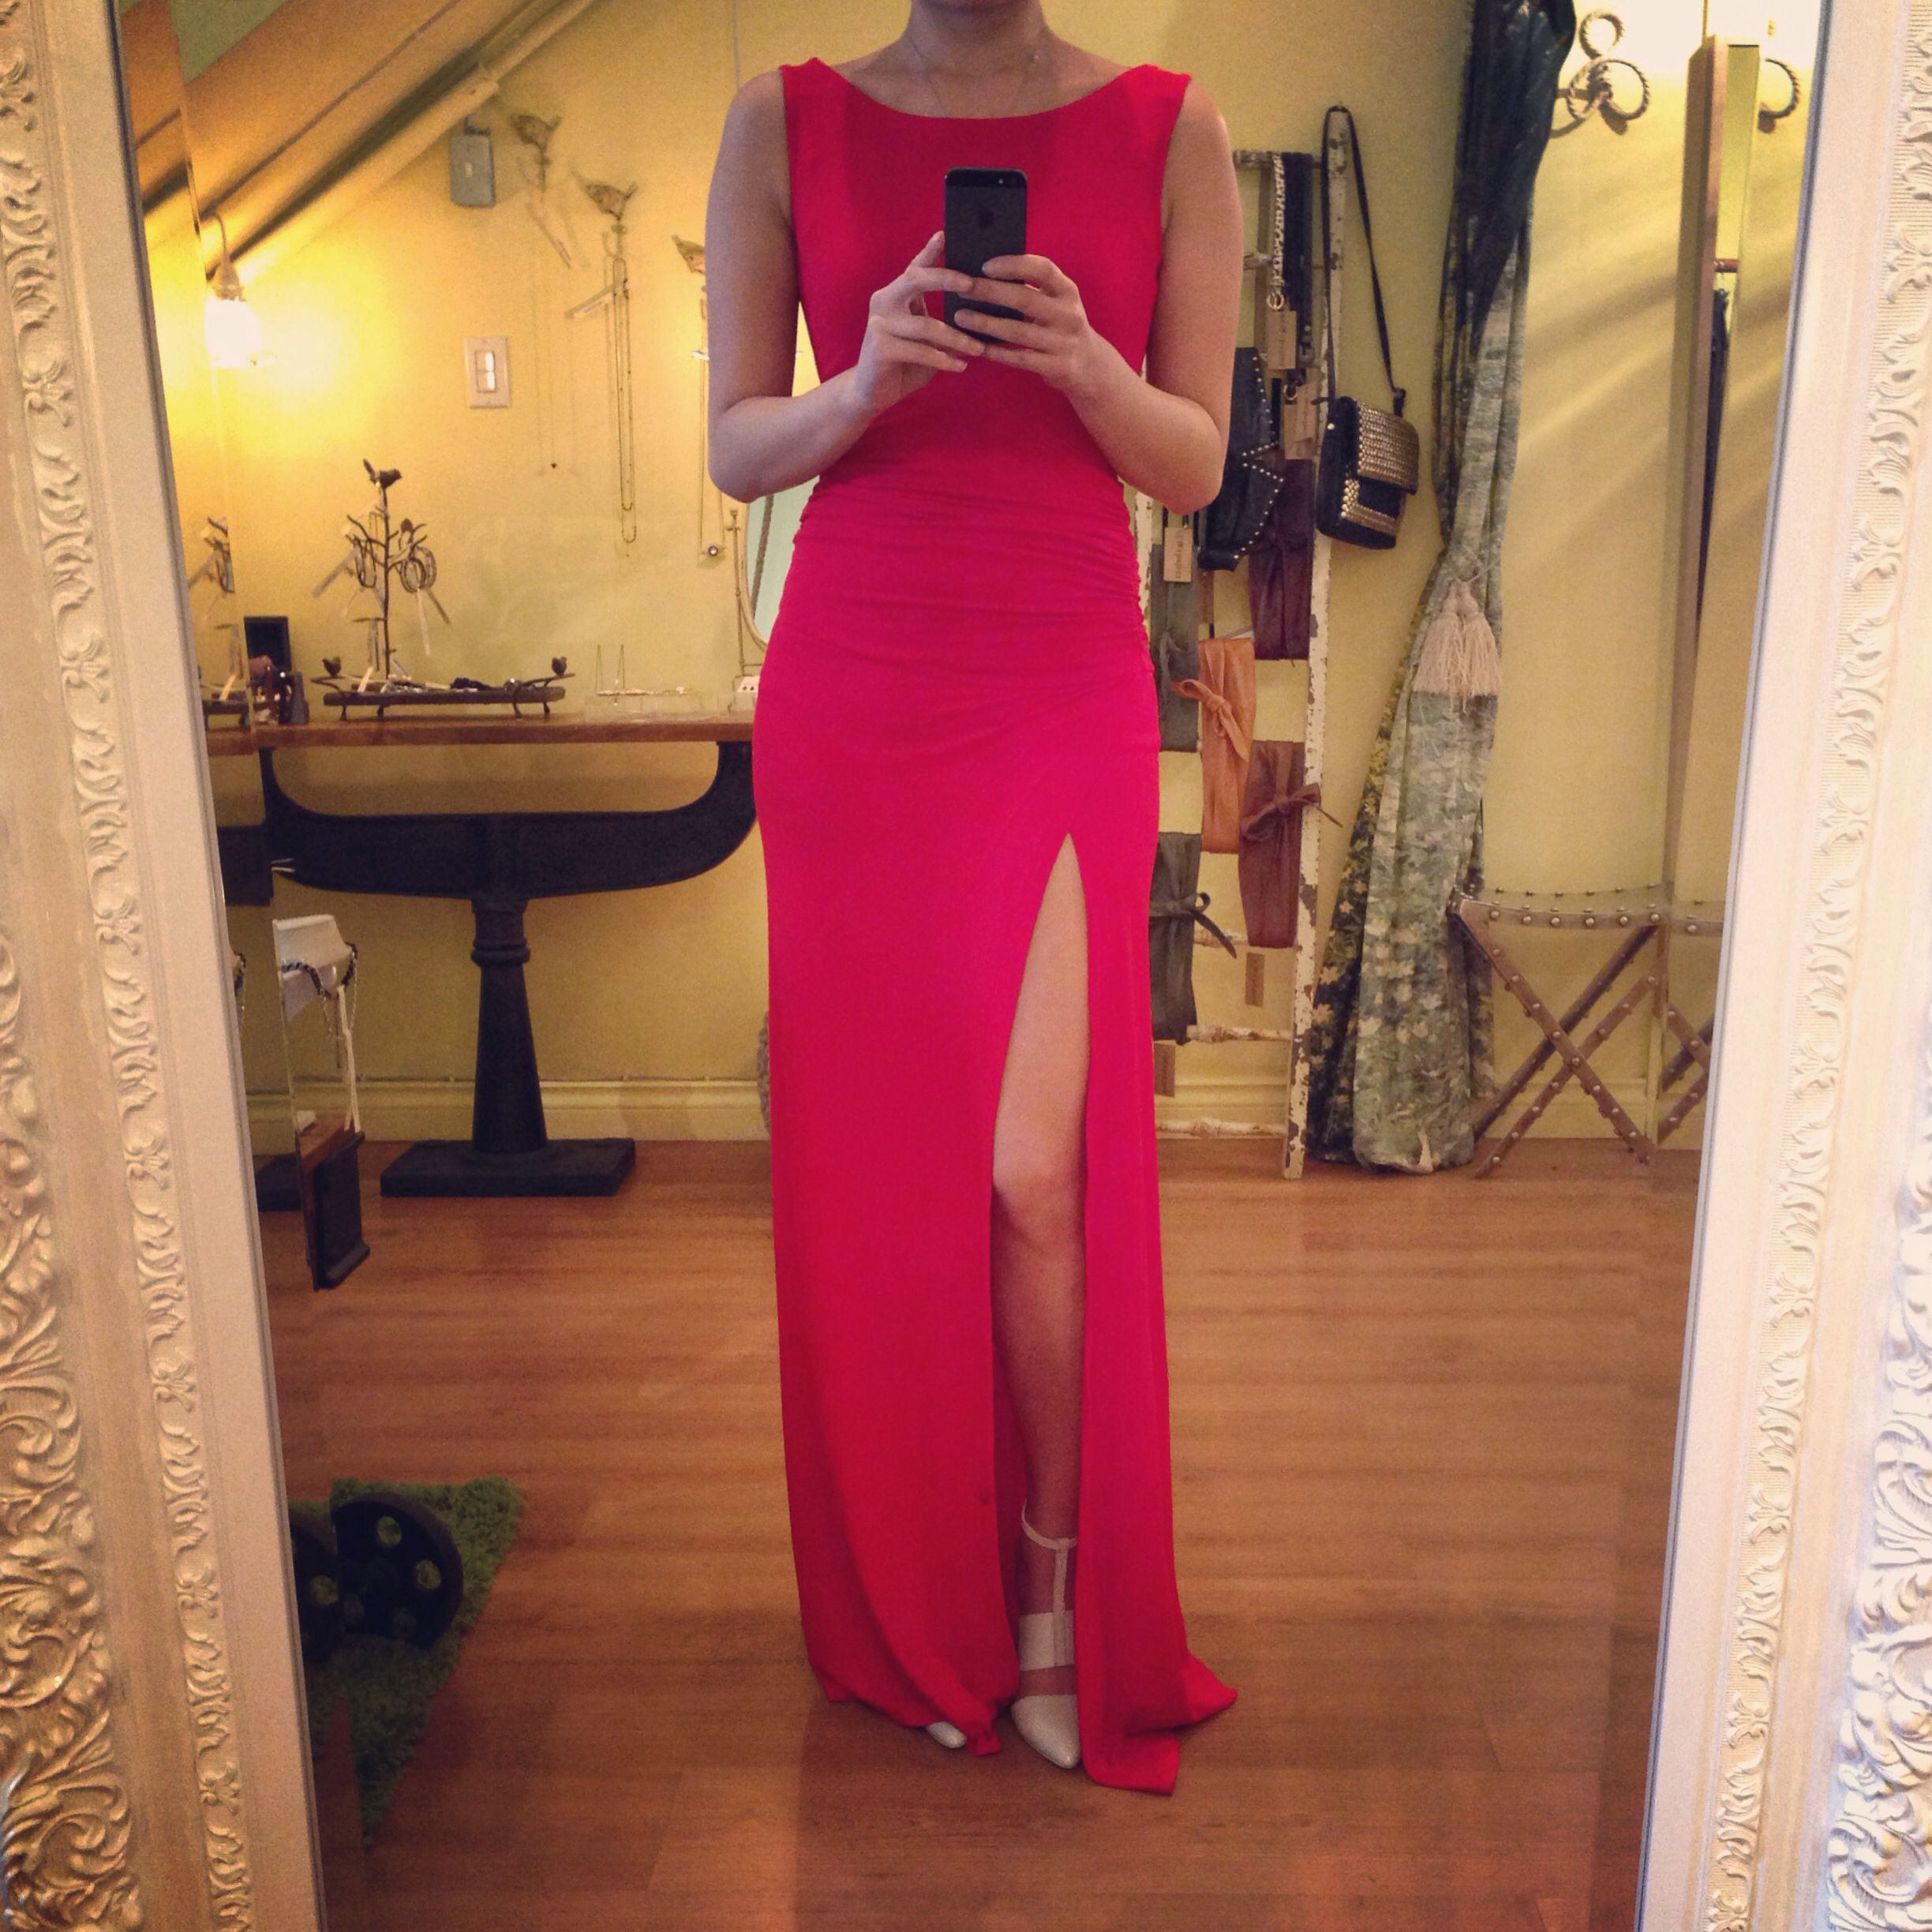 Every girl needs a red dress in her wardrobe !